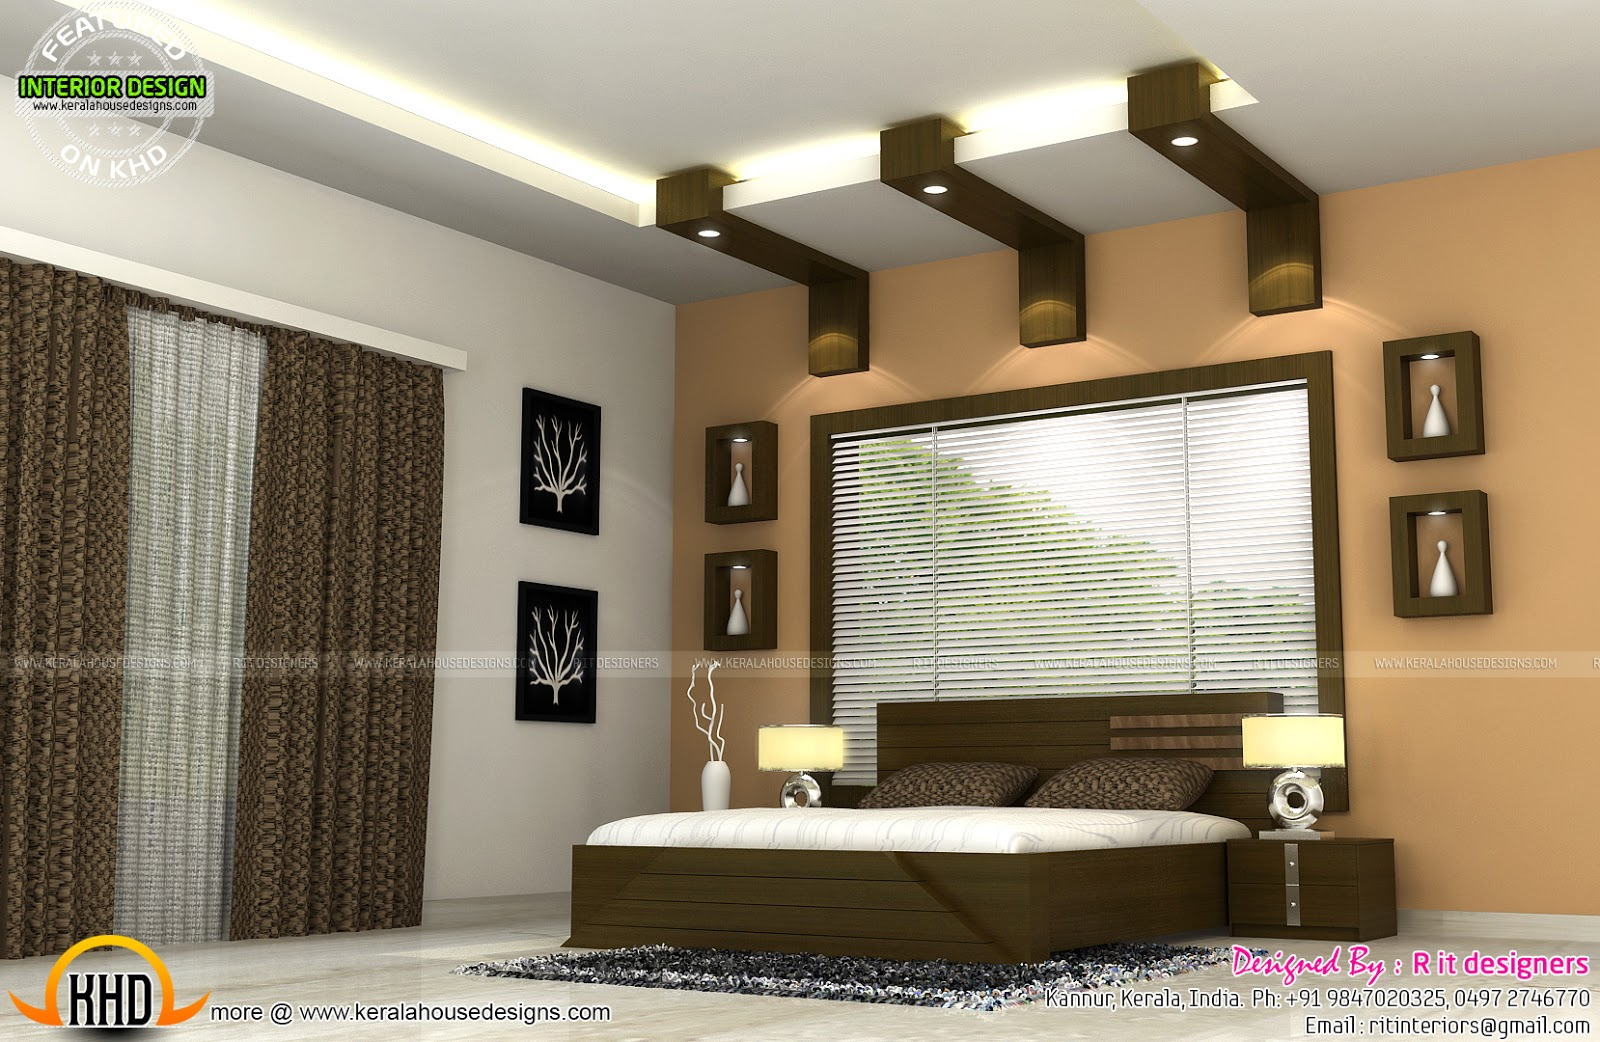 Interiors of bedrooms and kitchen kerala home design and for Home design ideas